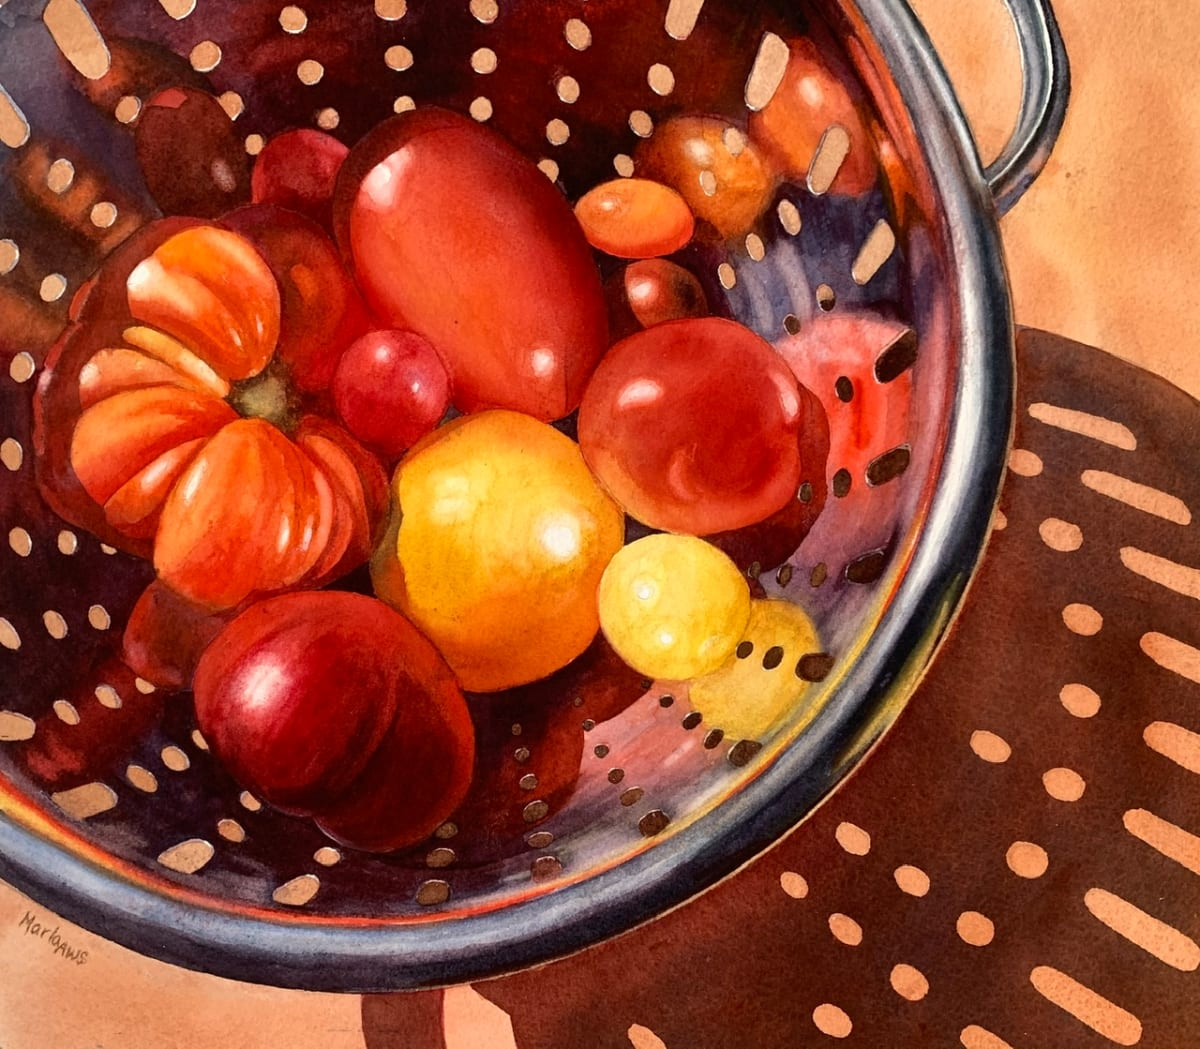 Tomato Season by Marla Greenfield